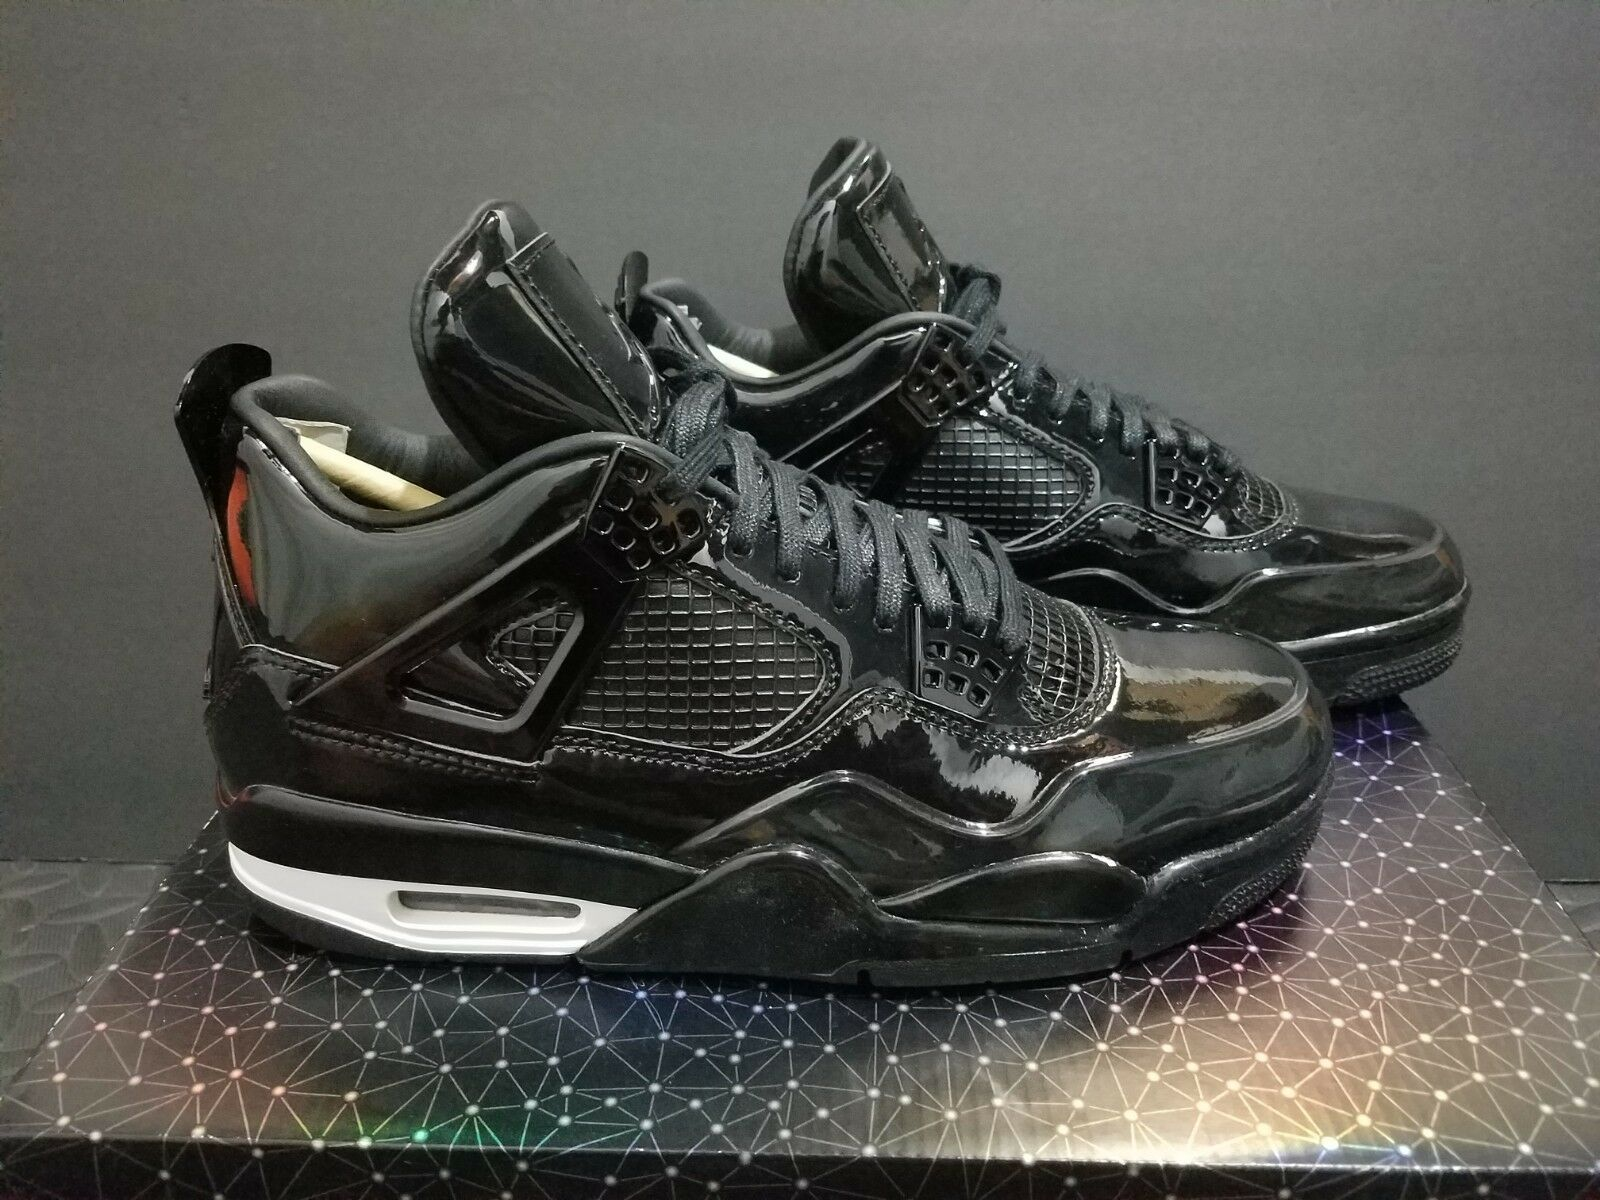 Nike Air Jordan 4 11Lab4 Black Patent Leather 719864-010 Size 7